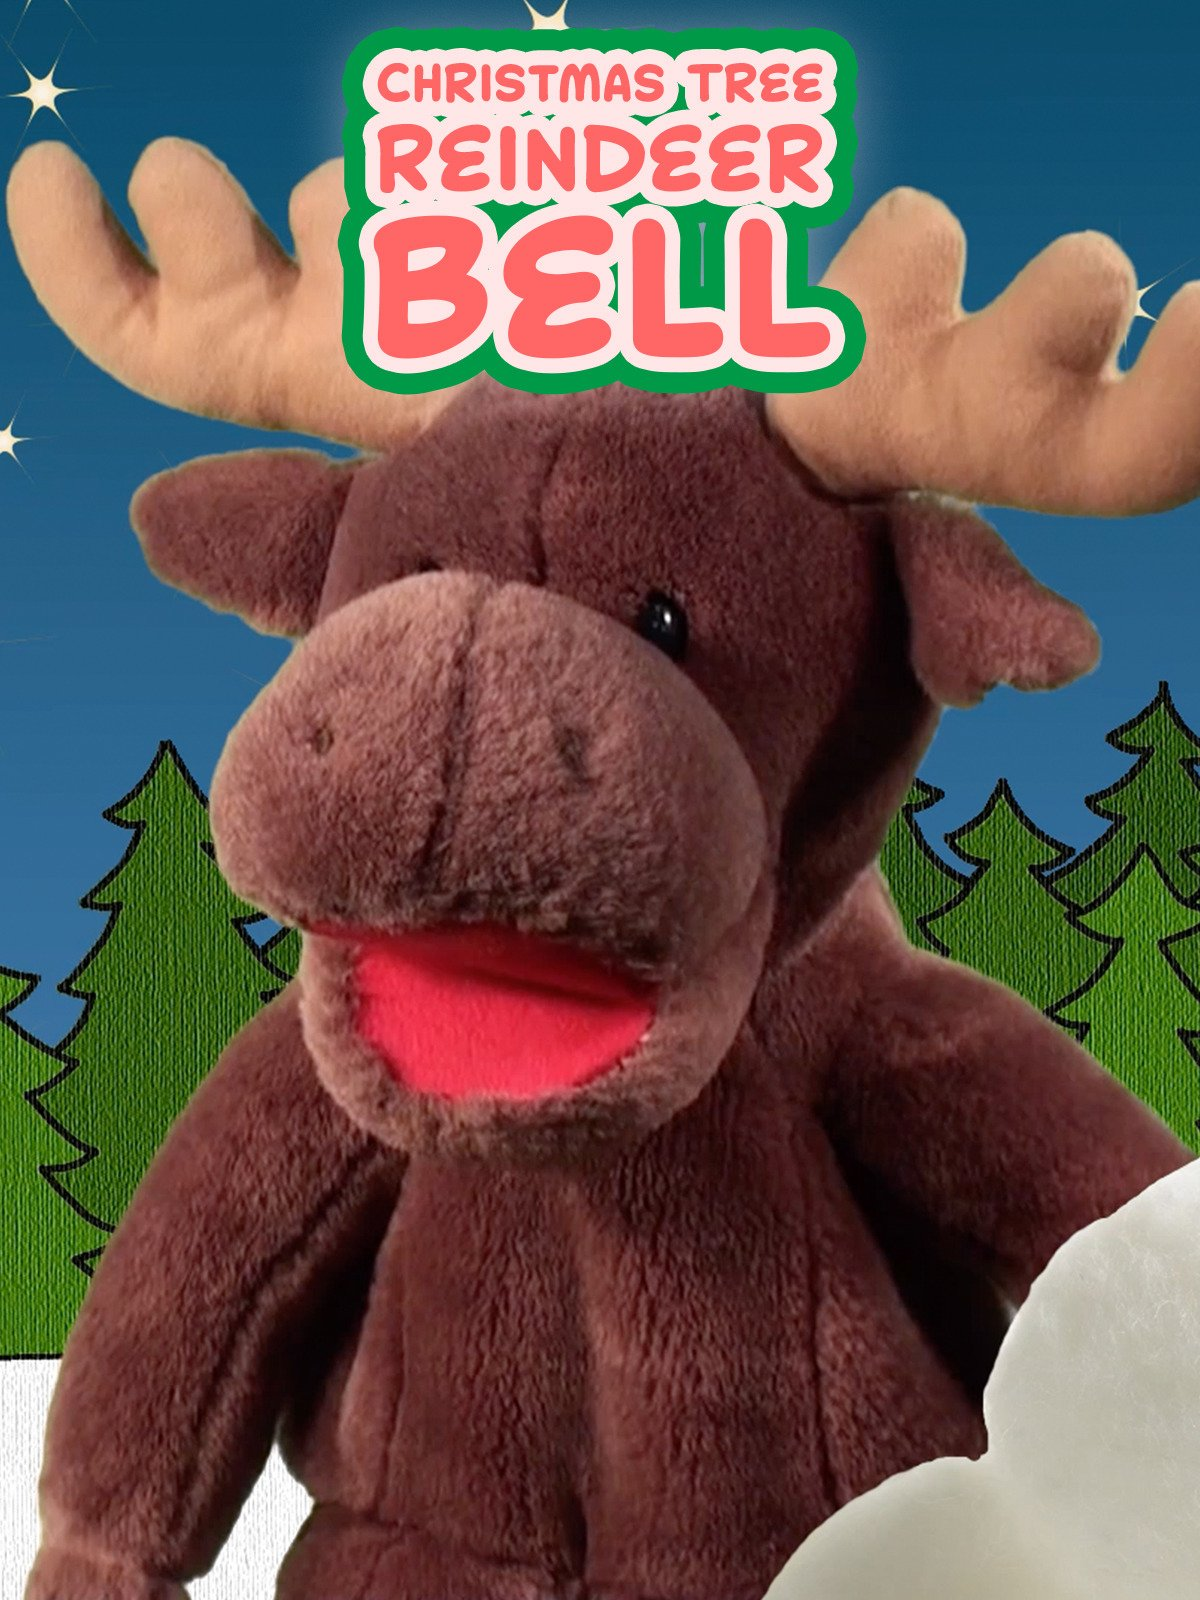 Christmas Tree, Reindeer, Bell